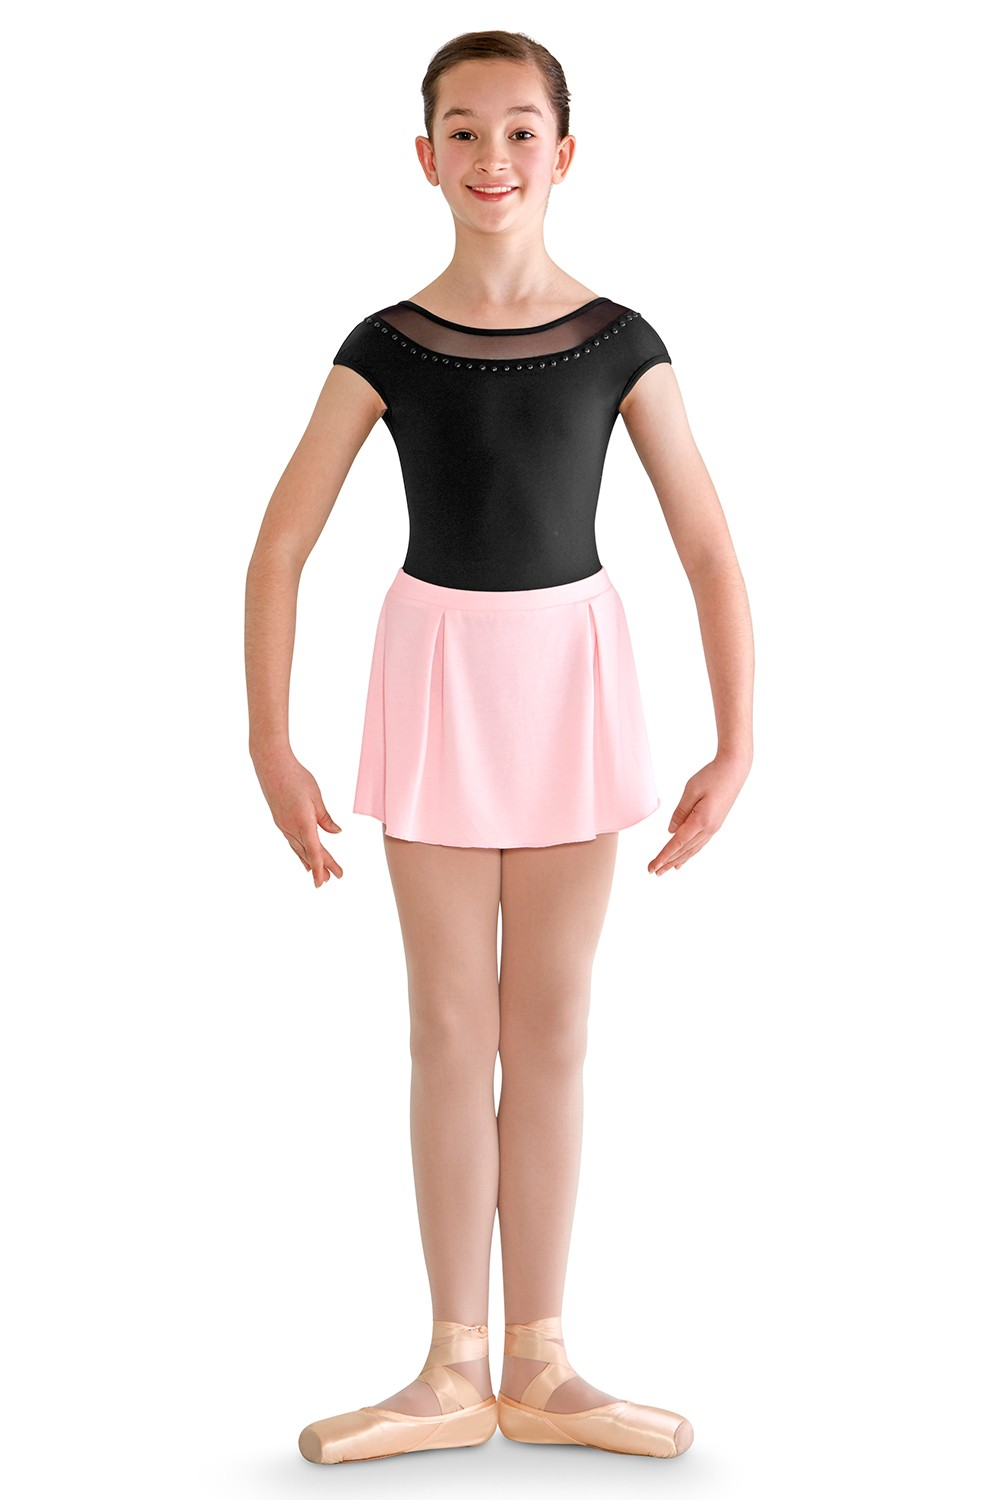 Bel Children's Dance Skirts